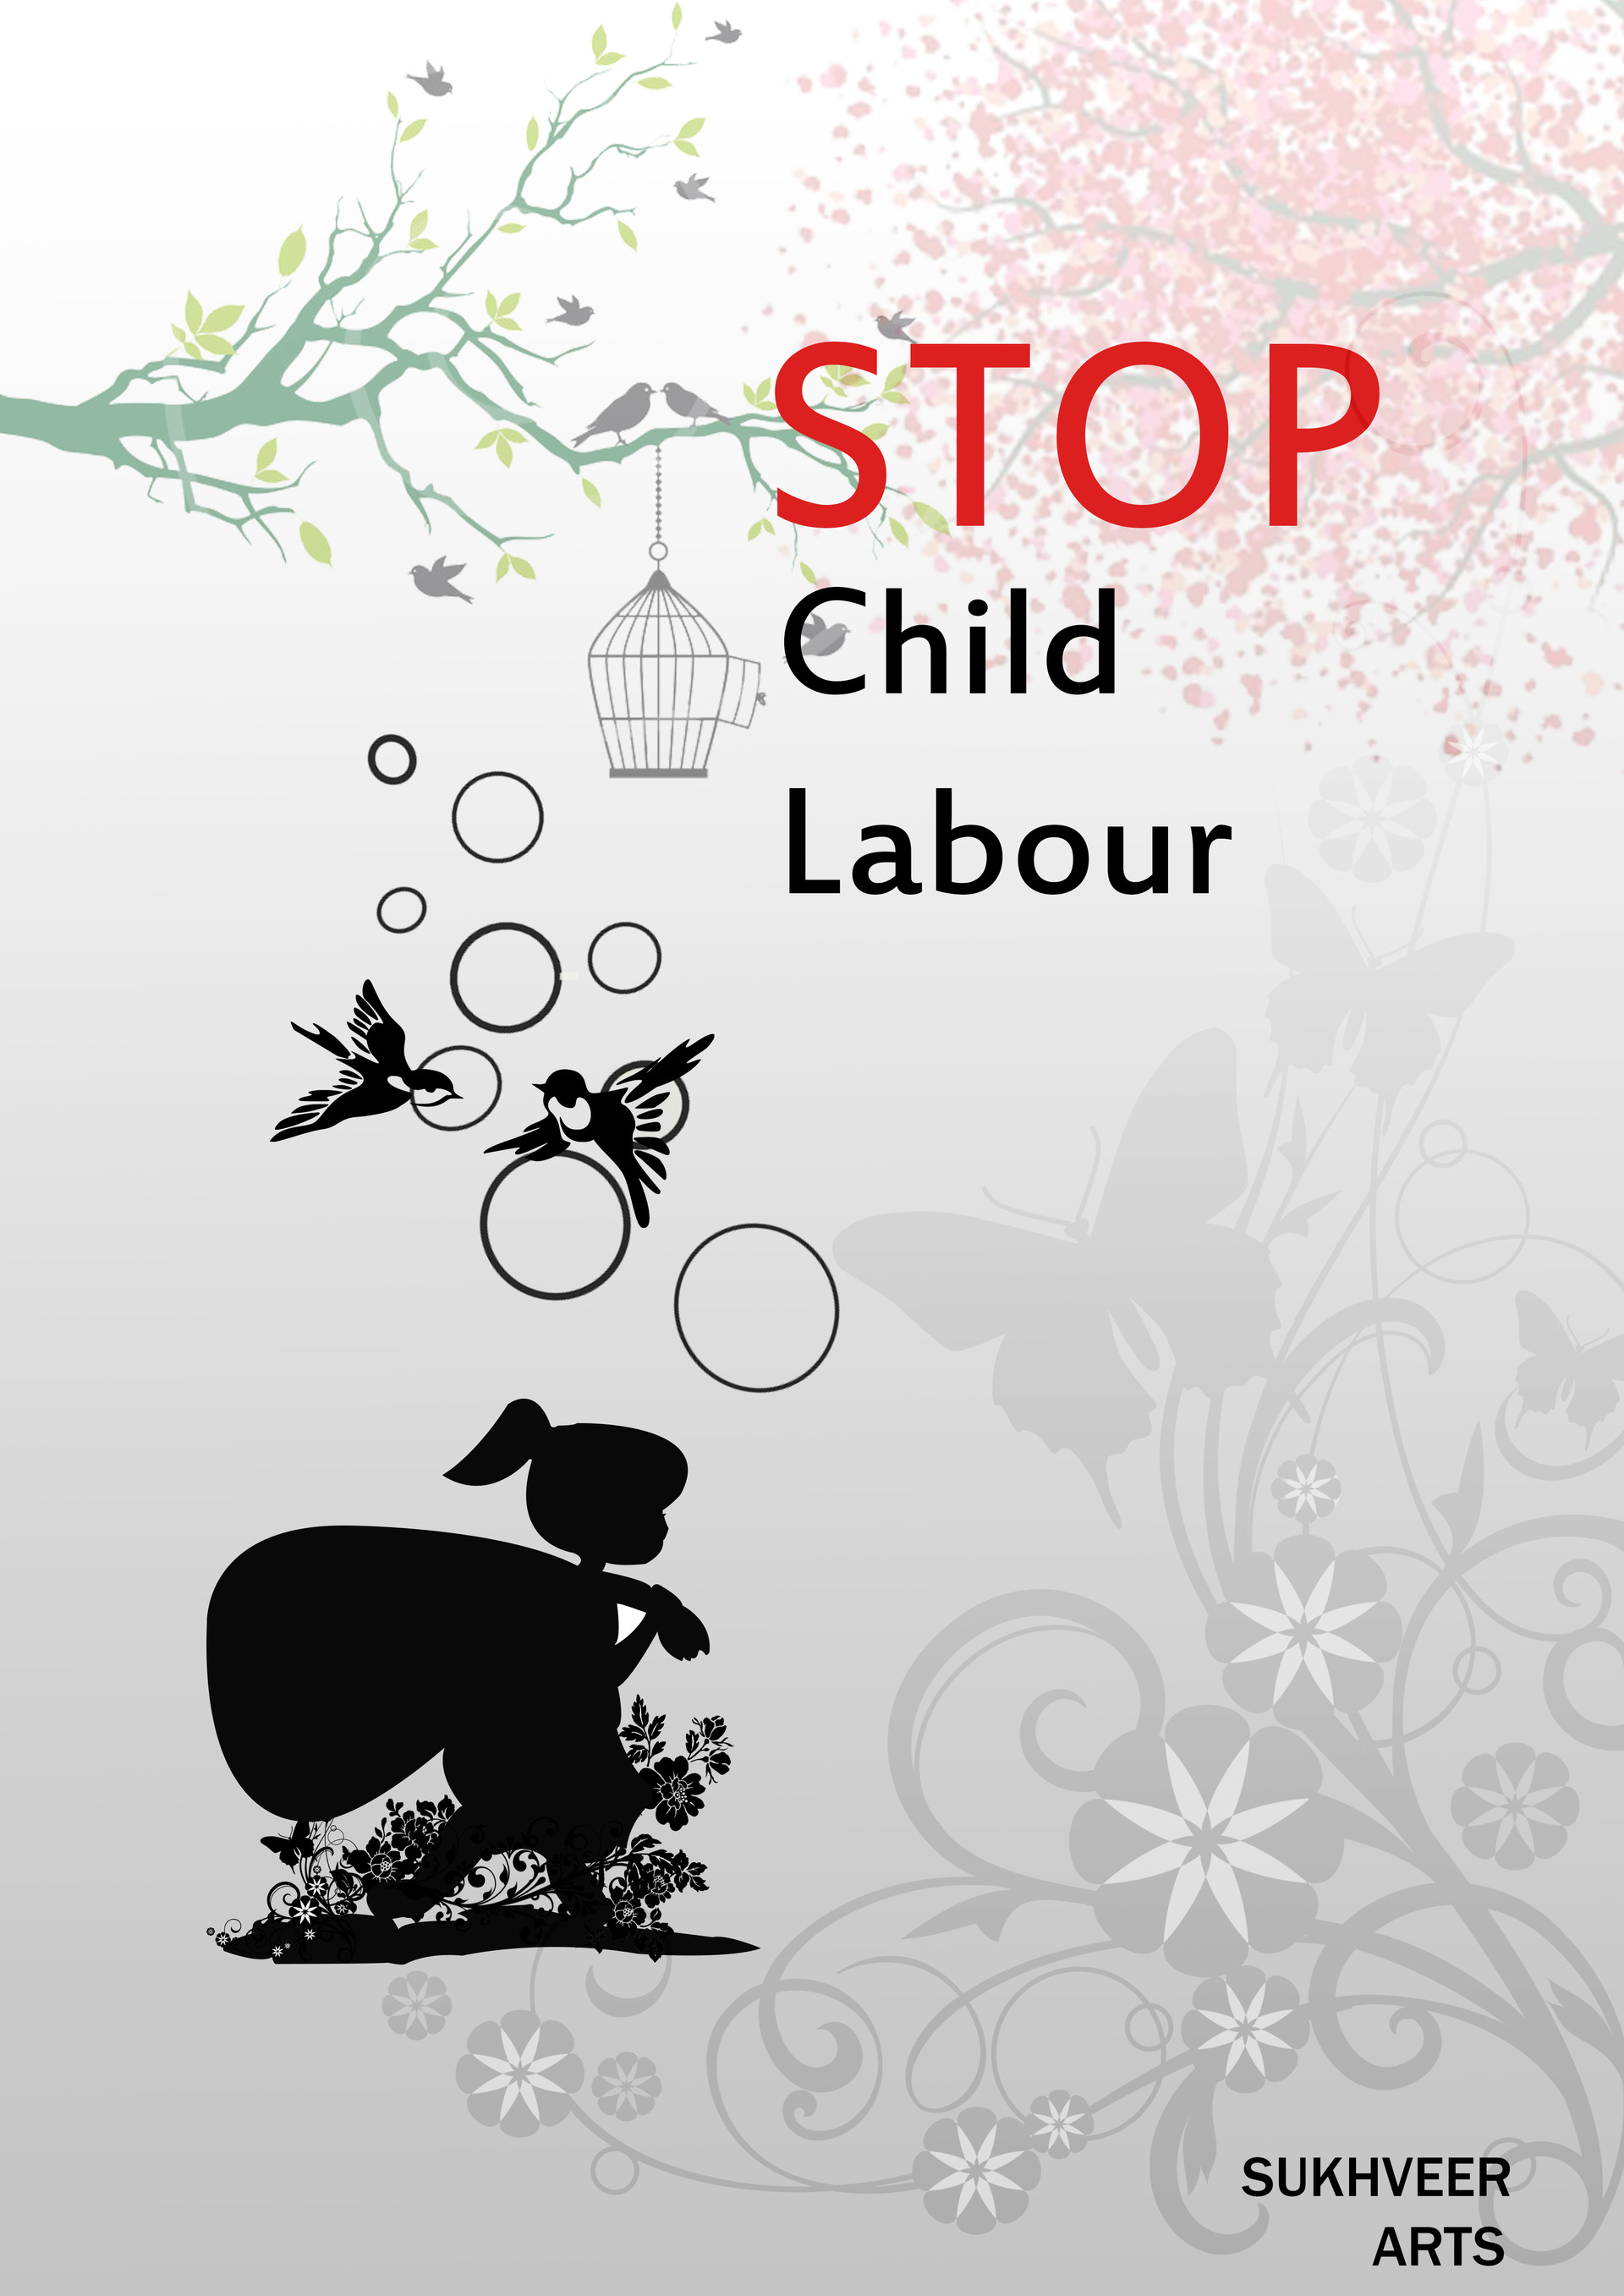 essay domestic child labour good bad A child abuse essay  telling a child that he or she is no good, worthless, bad,  some risks factors for child abuse and neglect might be domestic violence,.